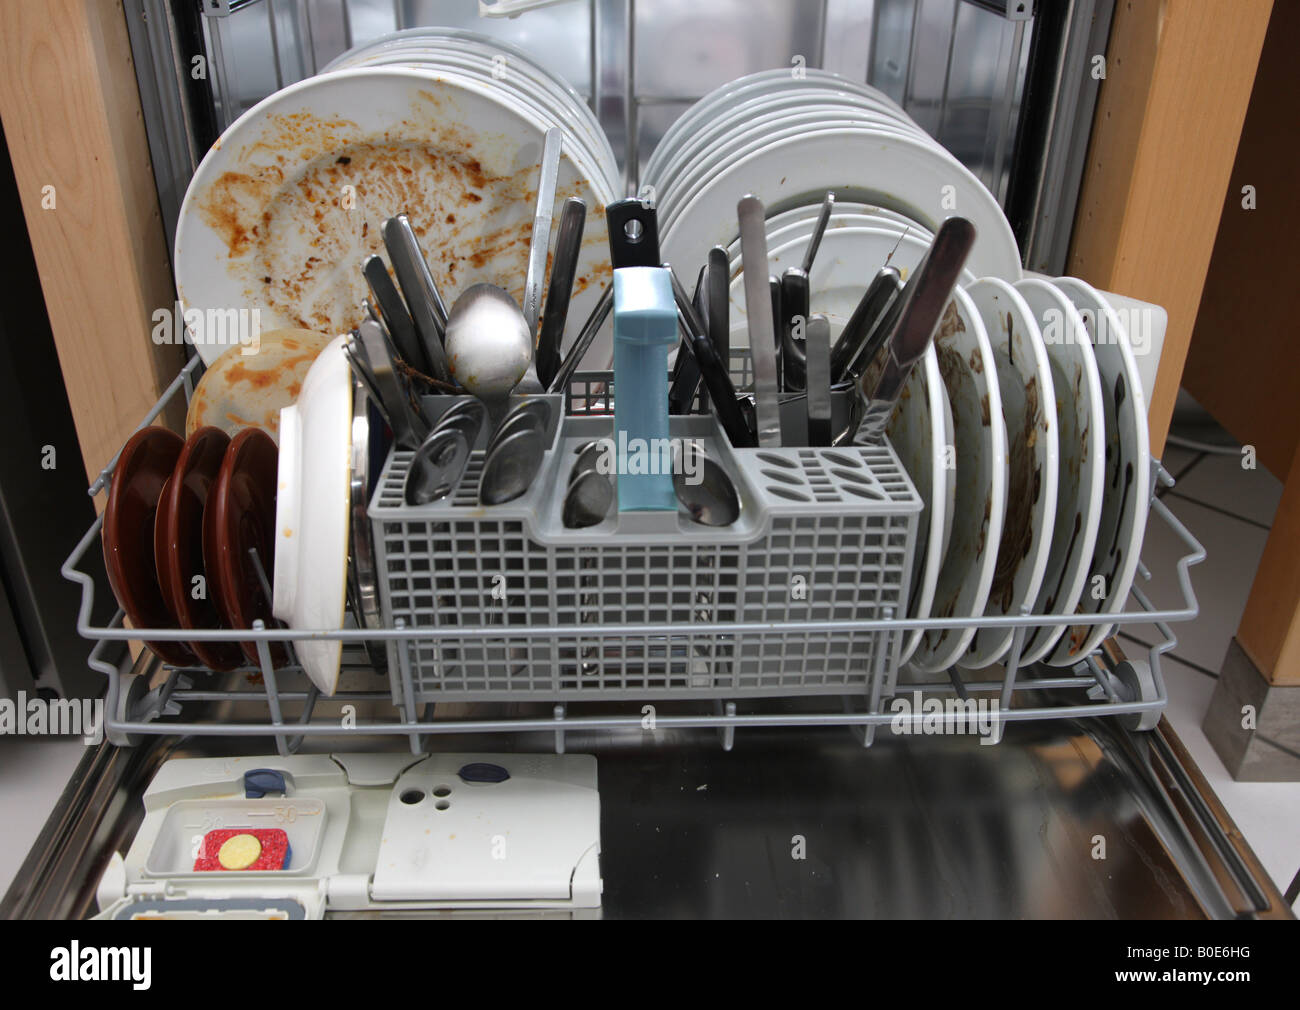 Deu Germany Dirty Used Dishes In A Dishwasher Stock Photo